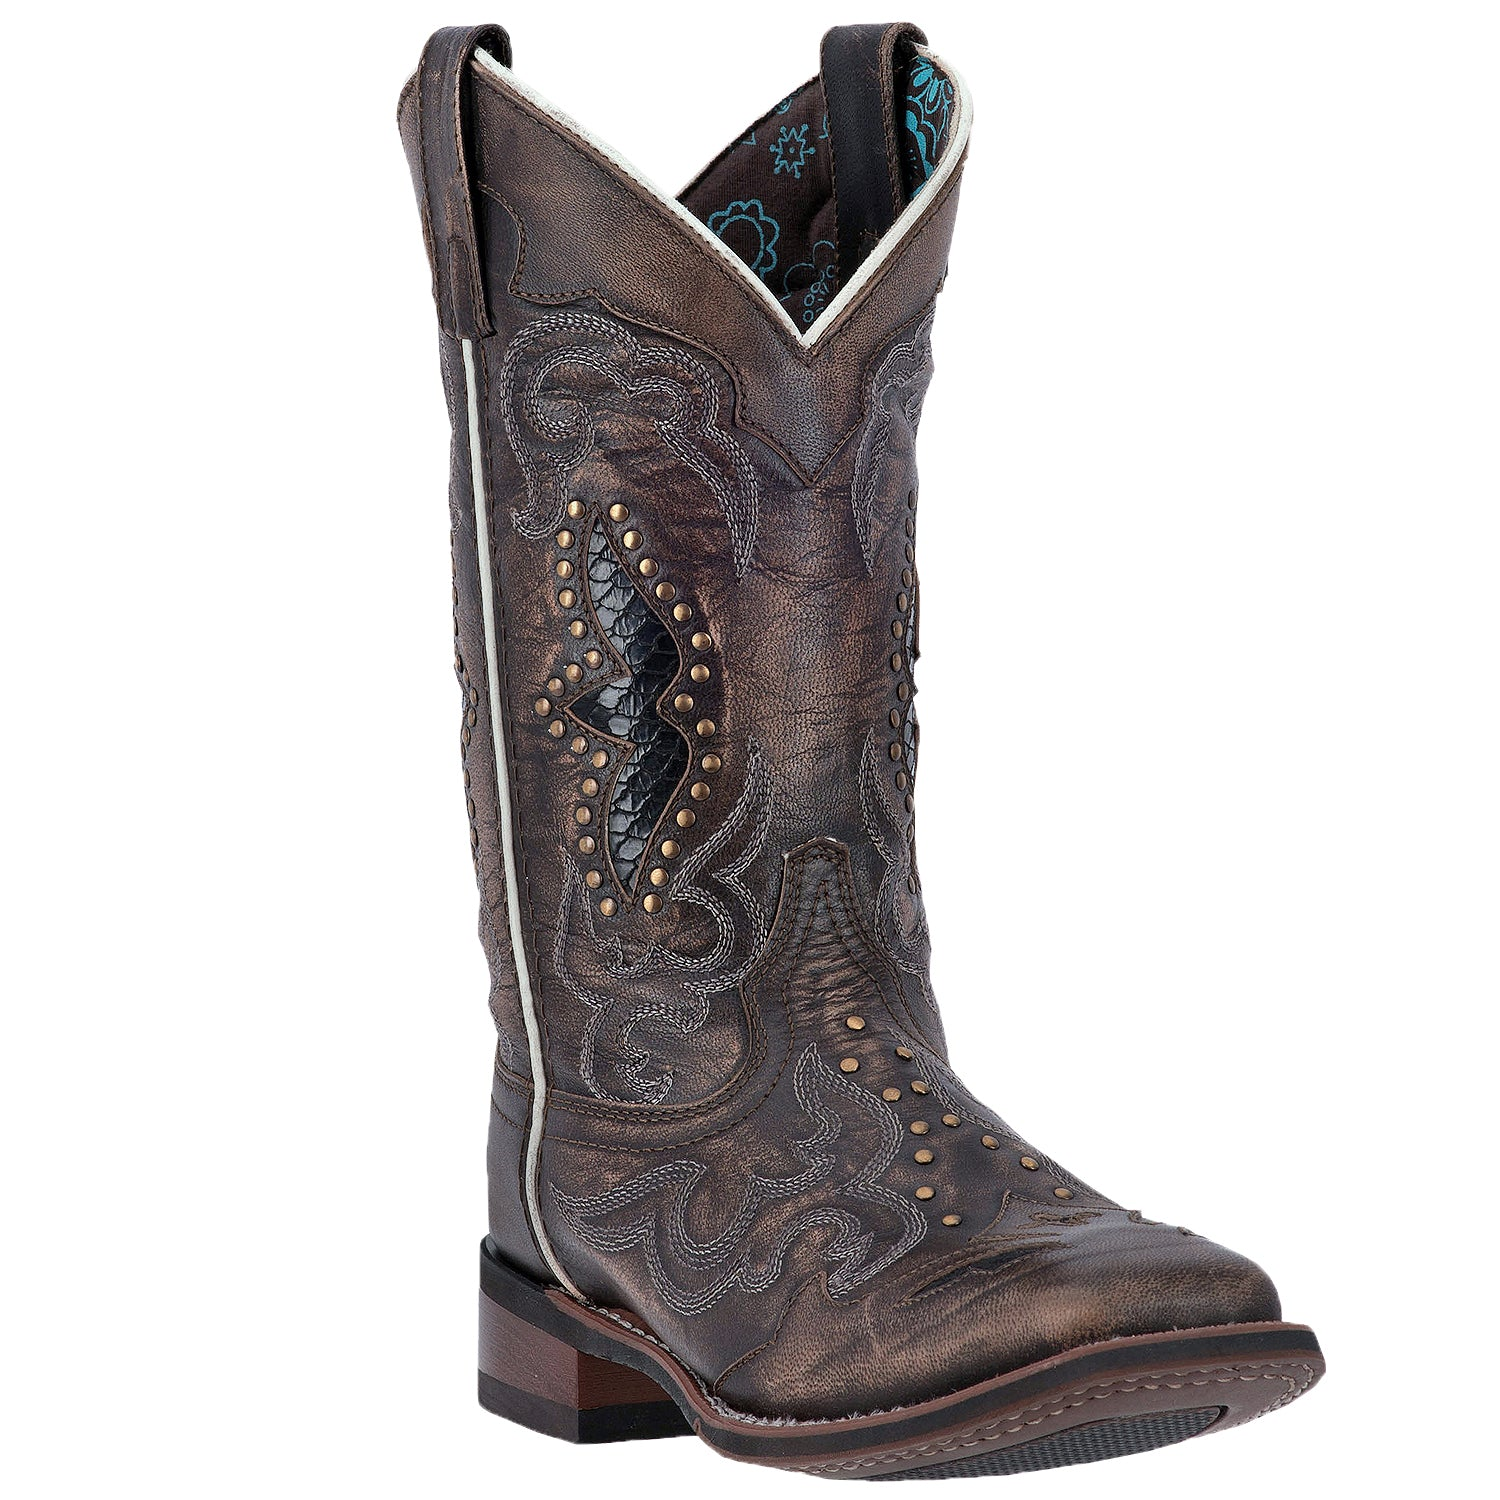 SPELLBOUND LEATHER BOOT 4254269931562